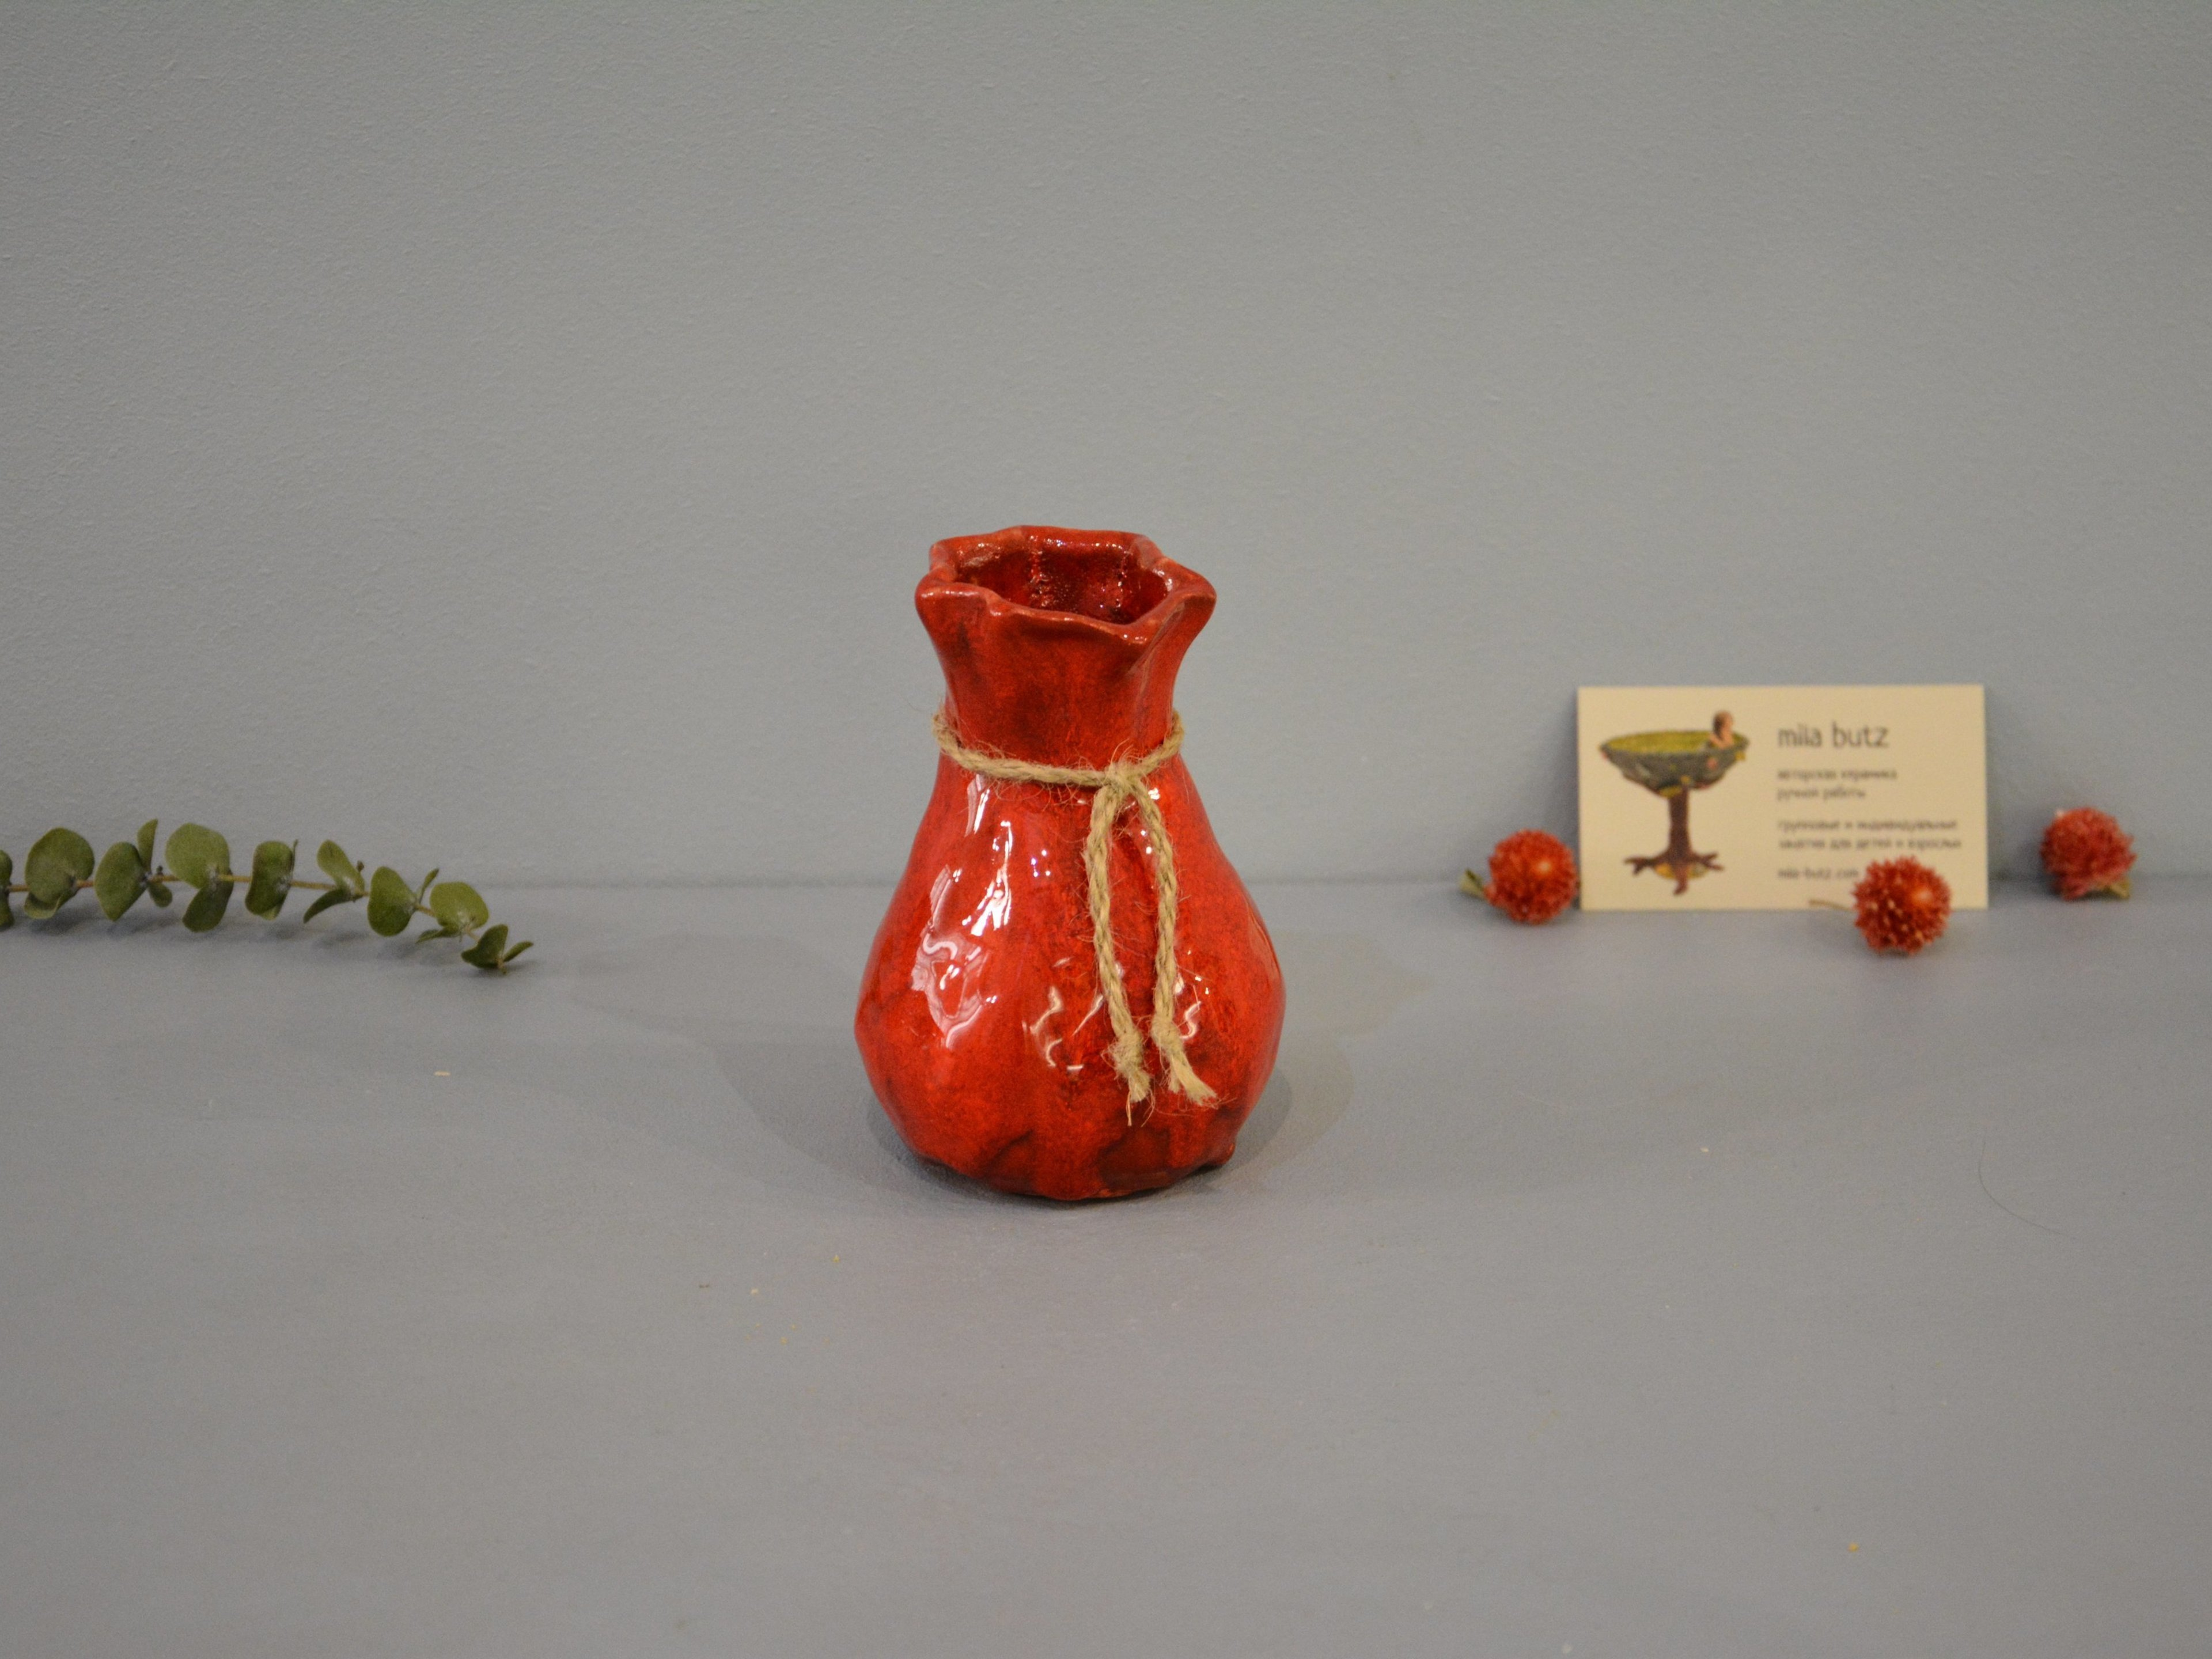 Small Vase or flowers «Red Bagful», height - 12 cm, color - red. Photo 1435-3840-2880.